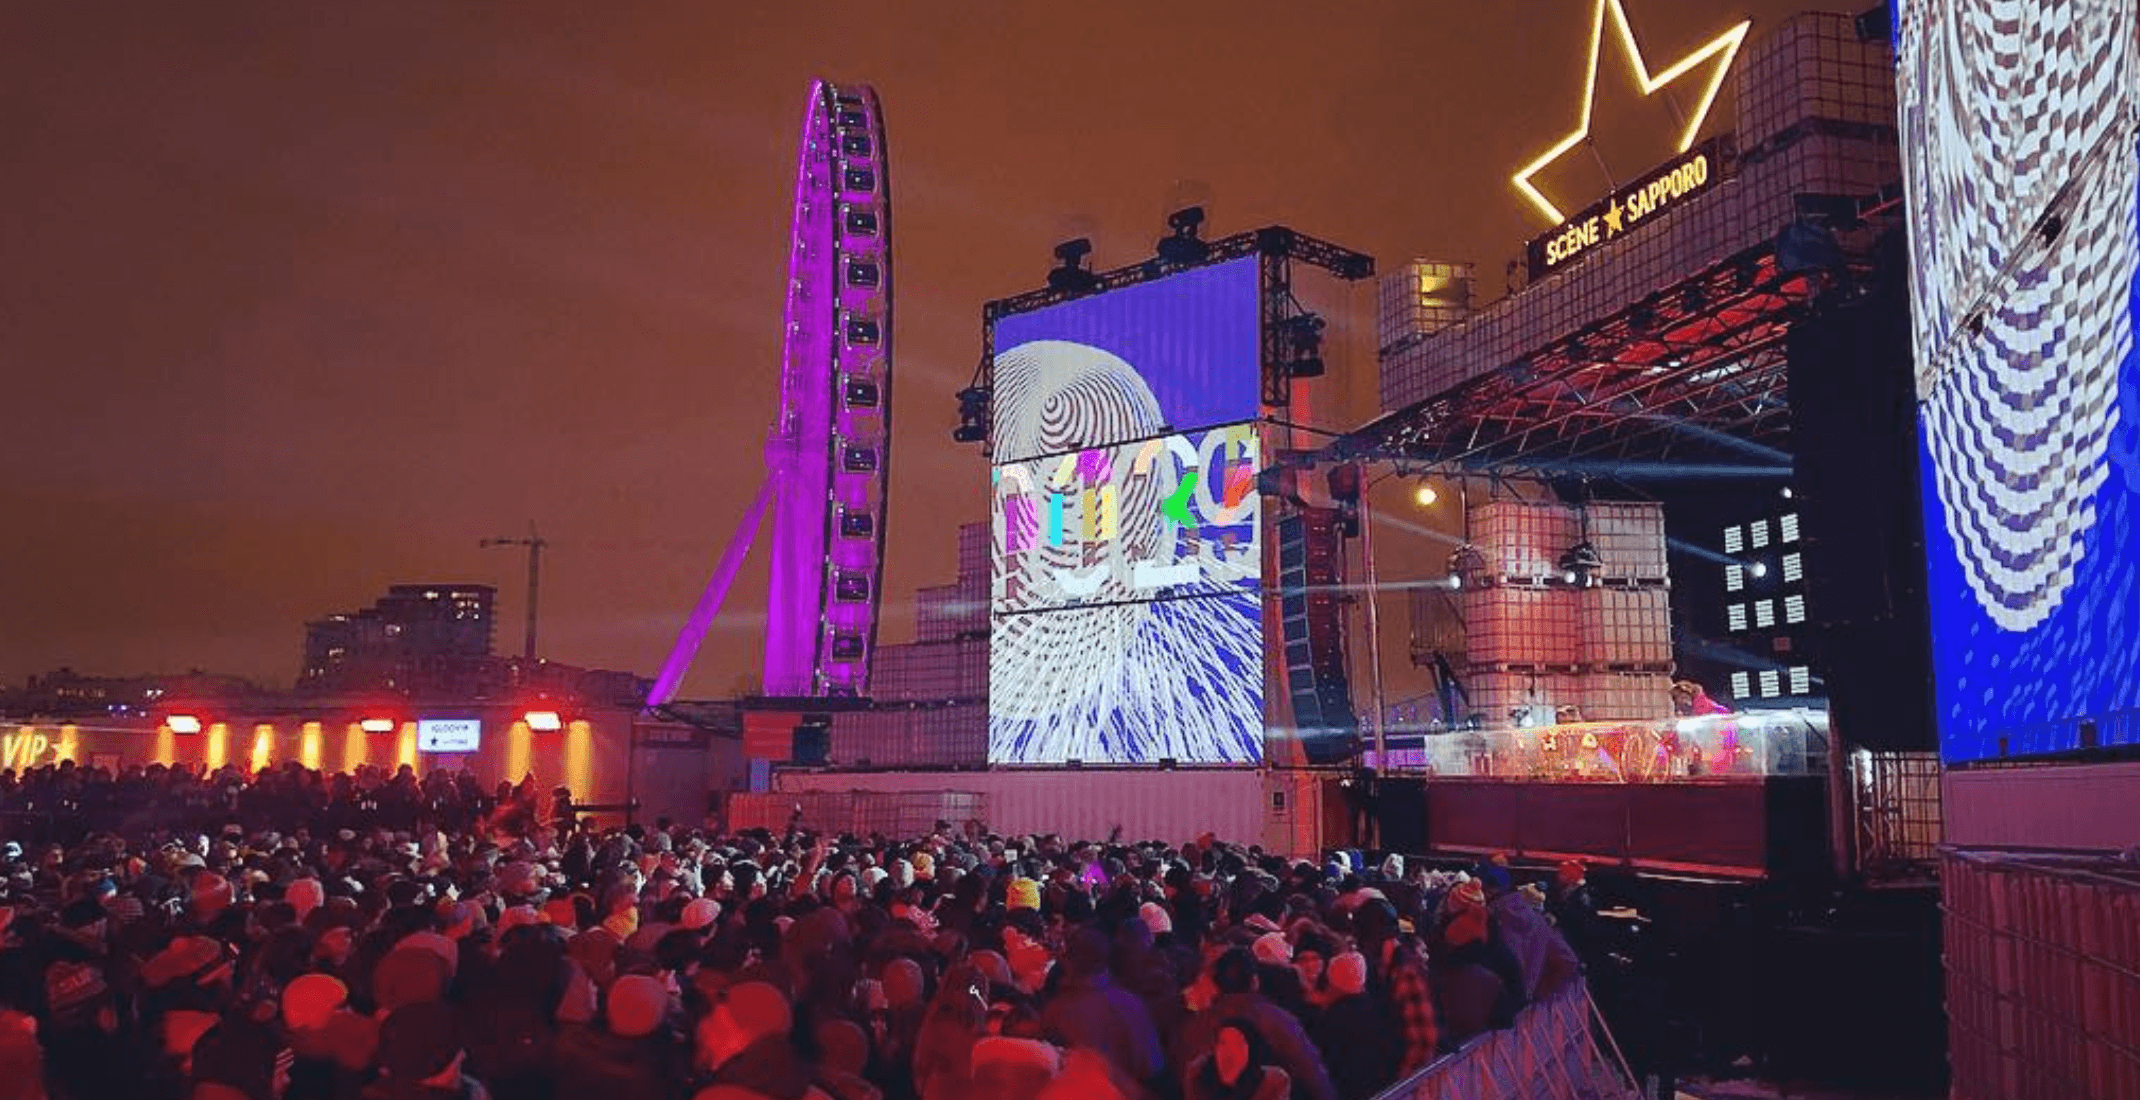 Reminder: STM is giving out free metro passes to Igloofest attendees